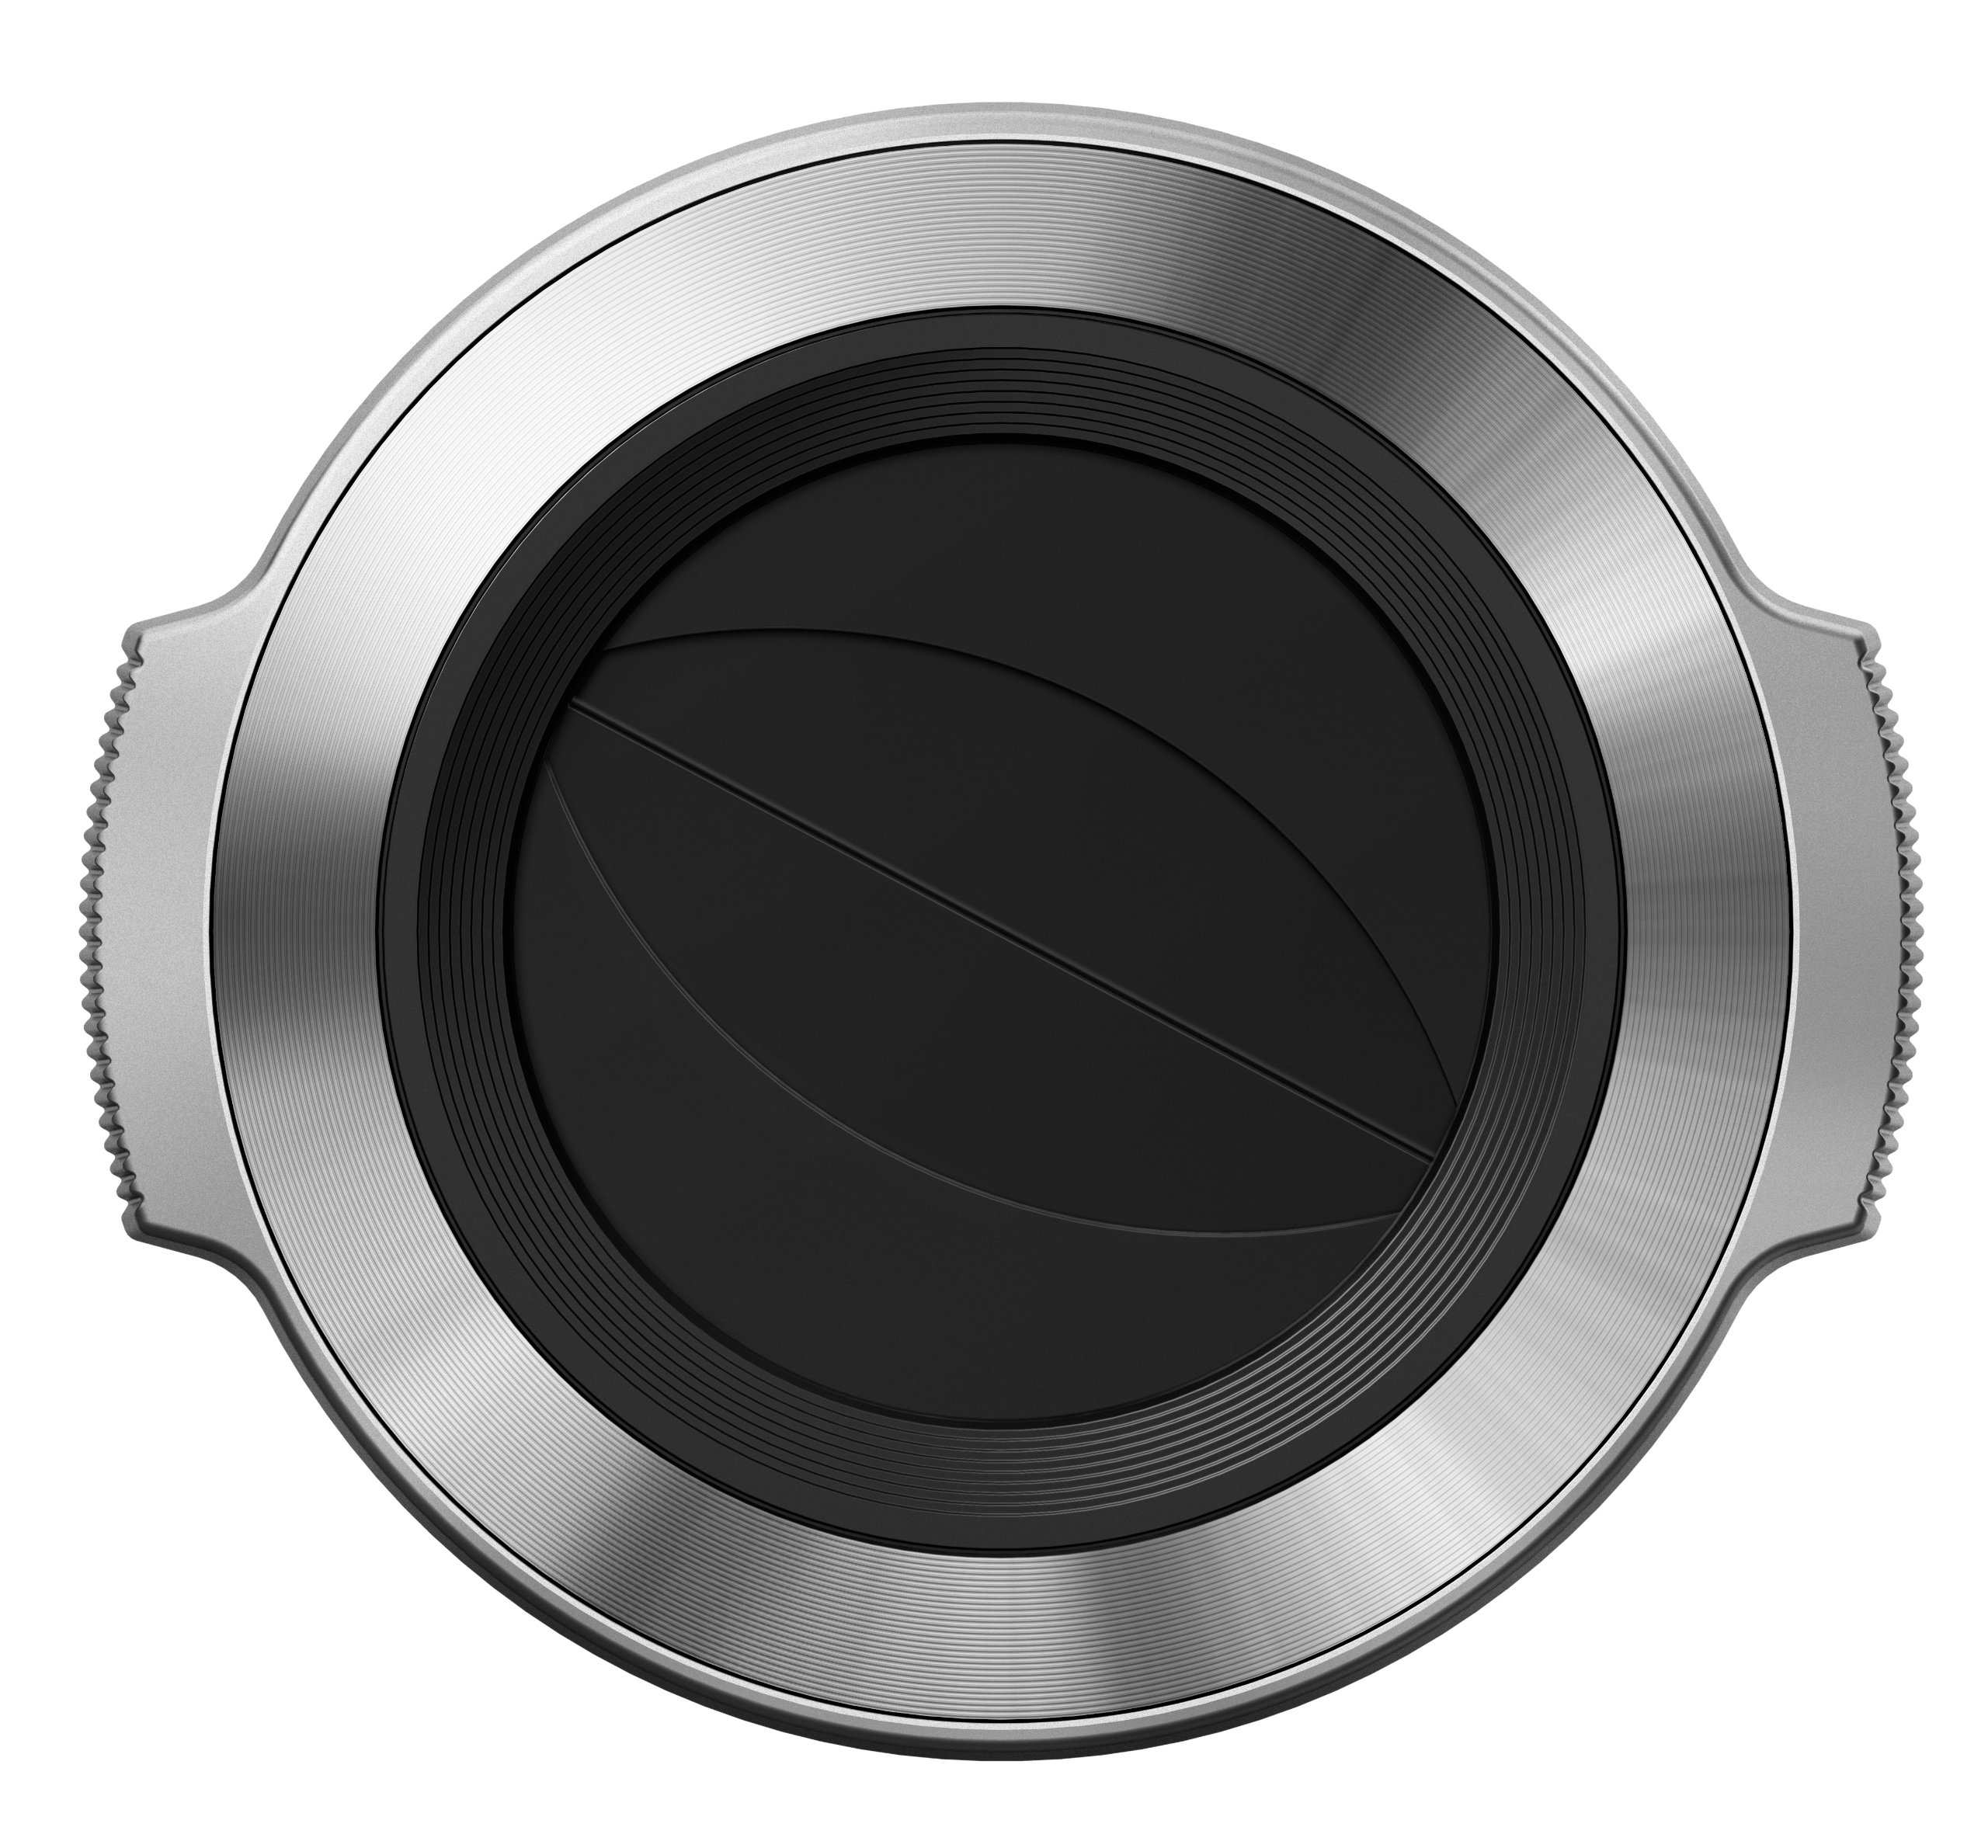 Olympus Lens Cap Auto Open LC-37C Silver for 14-42mm EZ (Silver) by Olympus